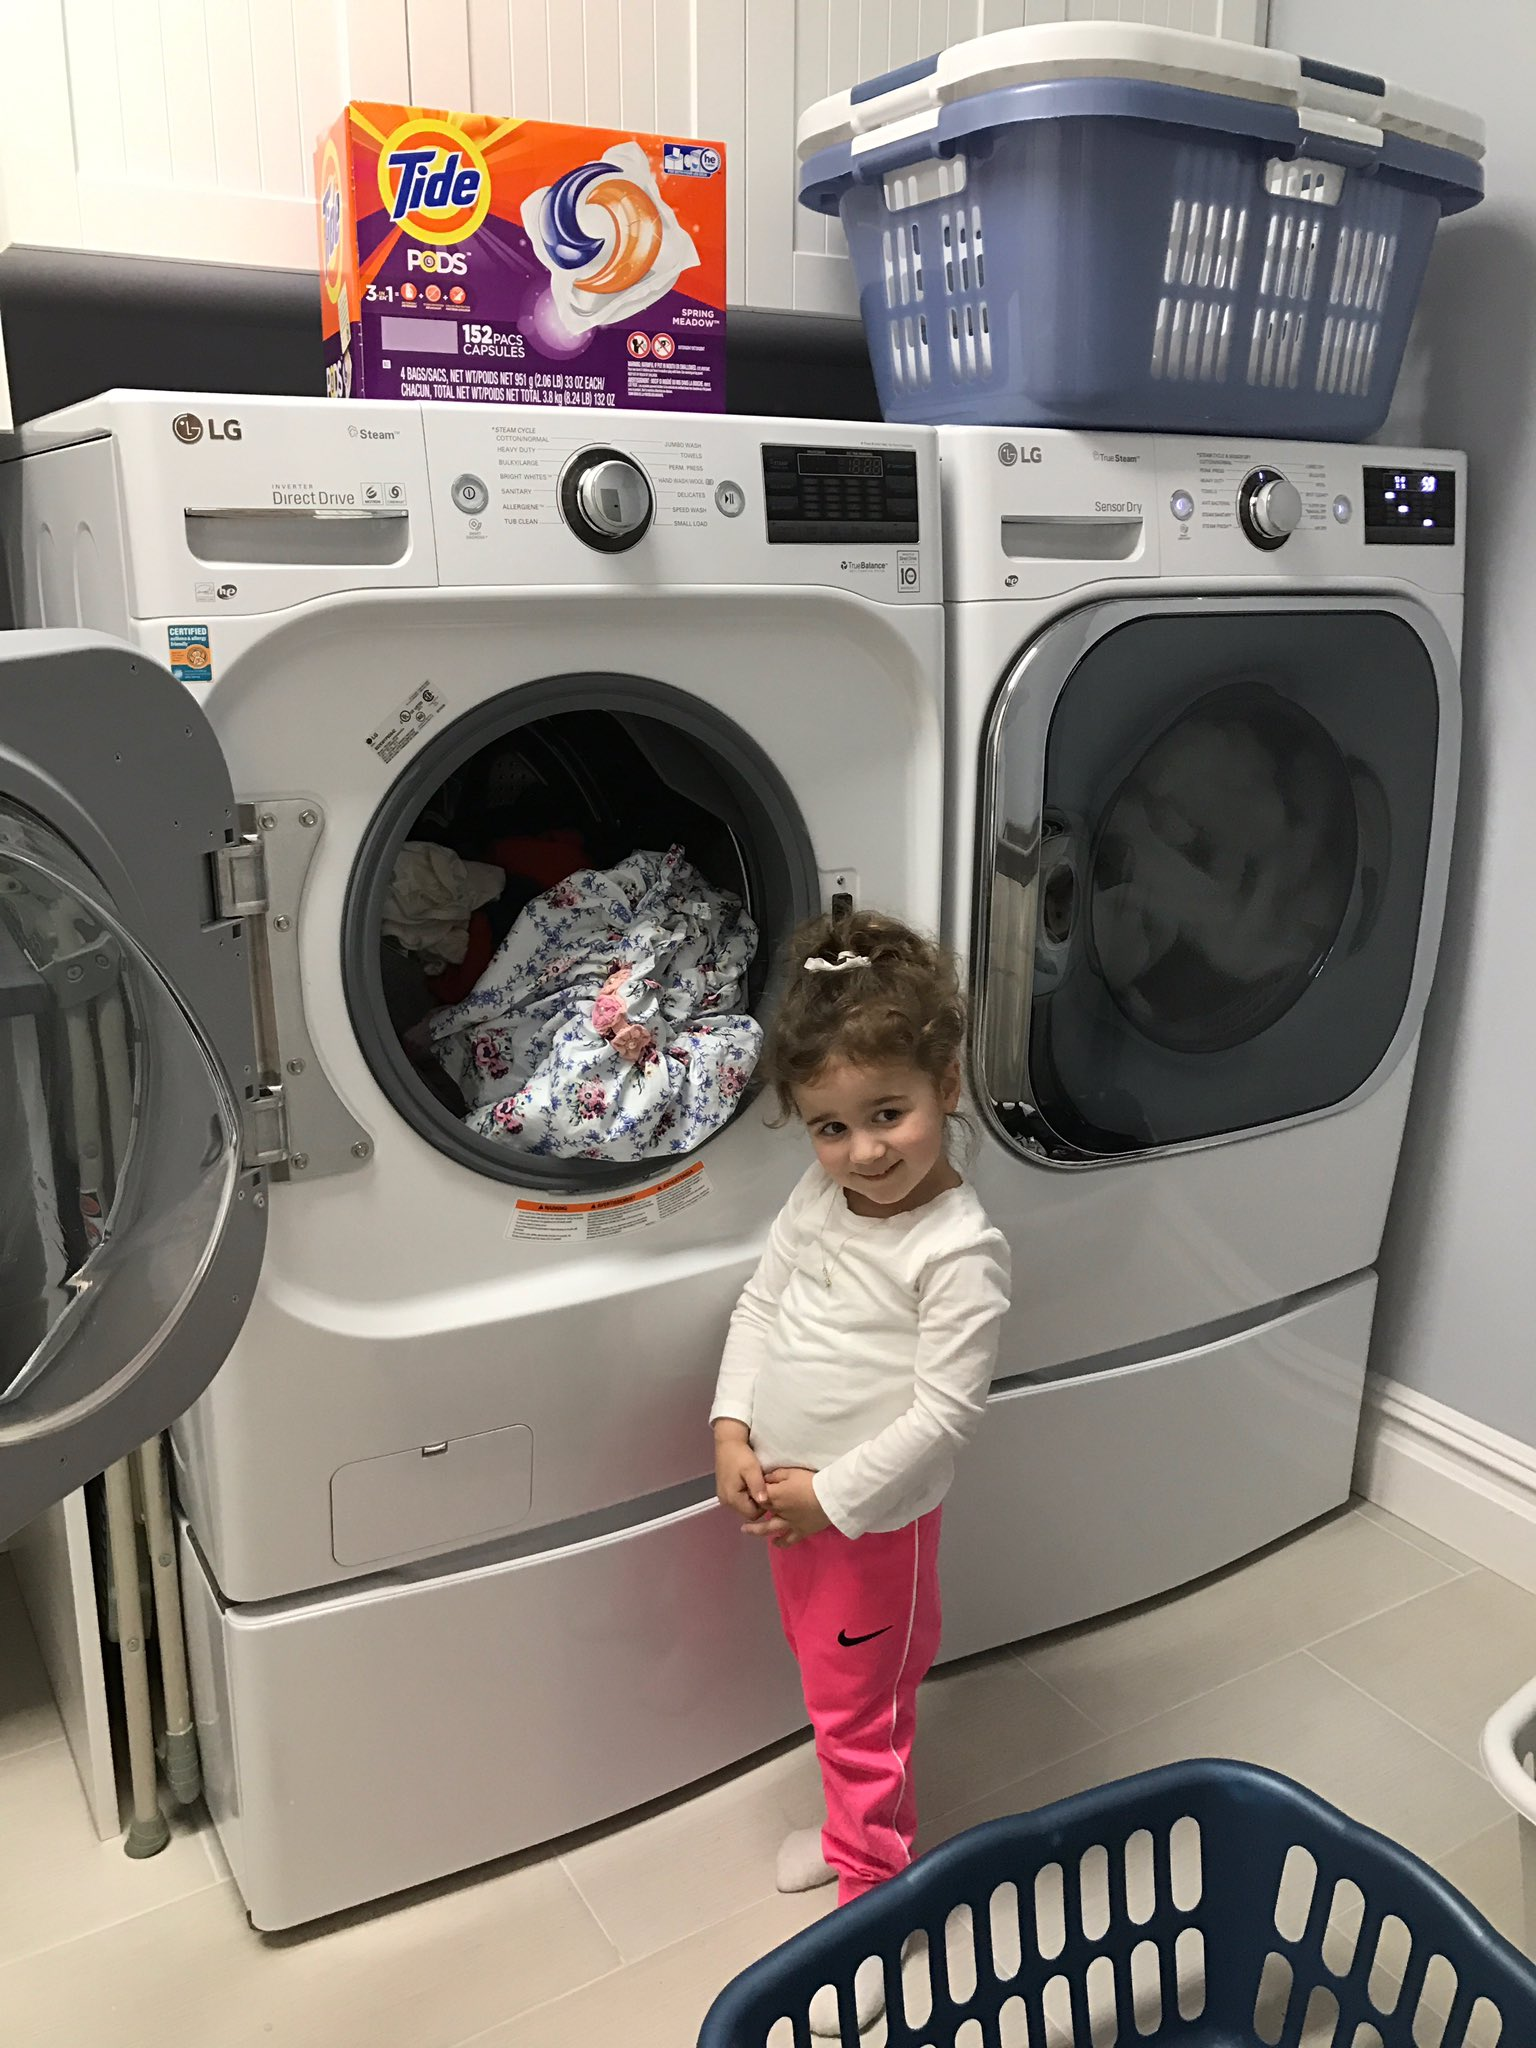 Bought the Tide Pods from Costco for laundry day and my helpful girl puts the dirty clothes in! #DetailsMatter #ad https://t.co/BG02YvSYVI